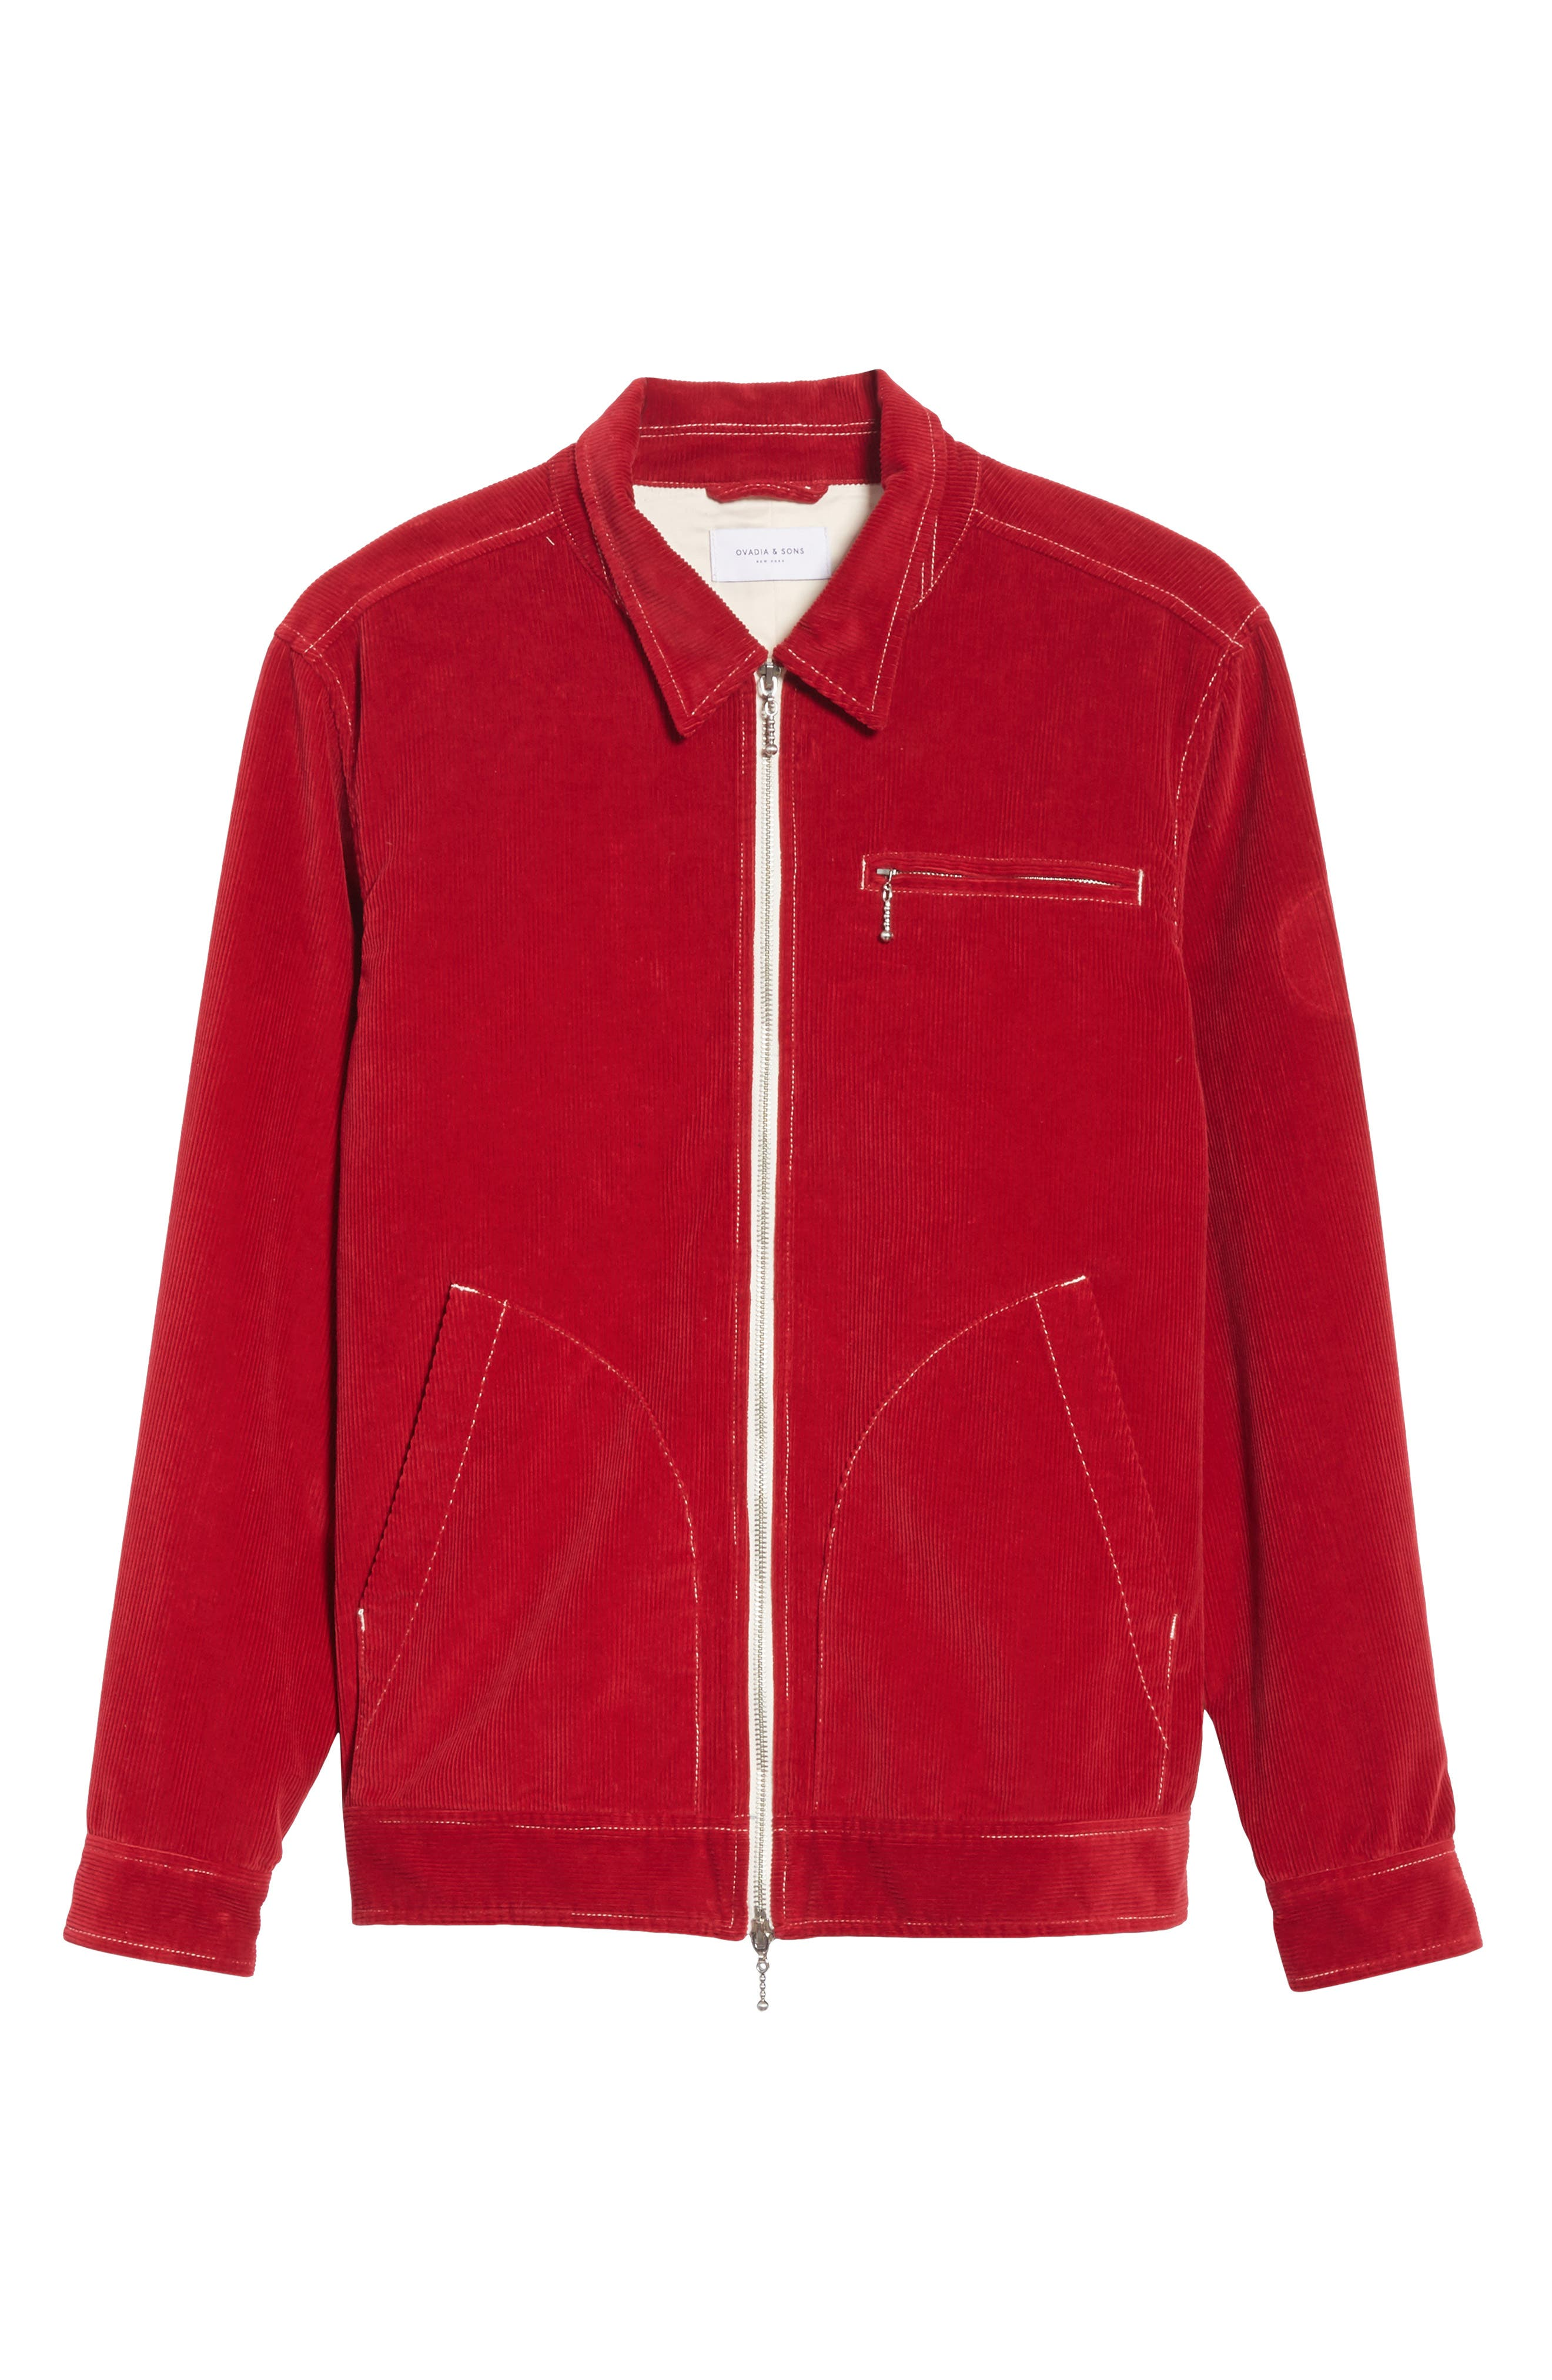 Shedding Light Embroidered Corduroy Jacket,                             Alternate thumbnail 5, color,                             RED